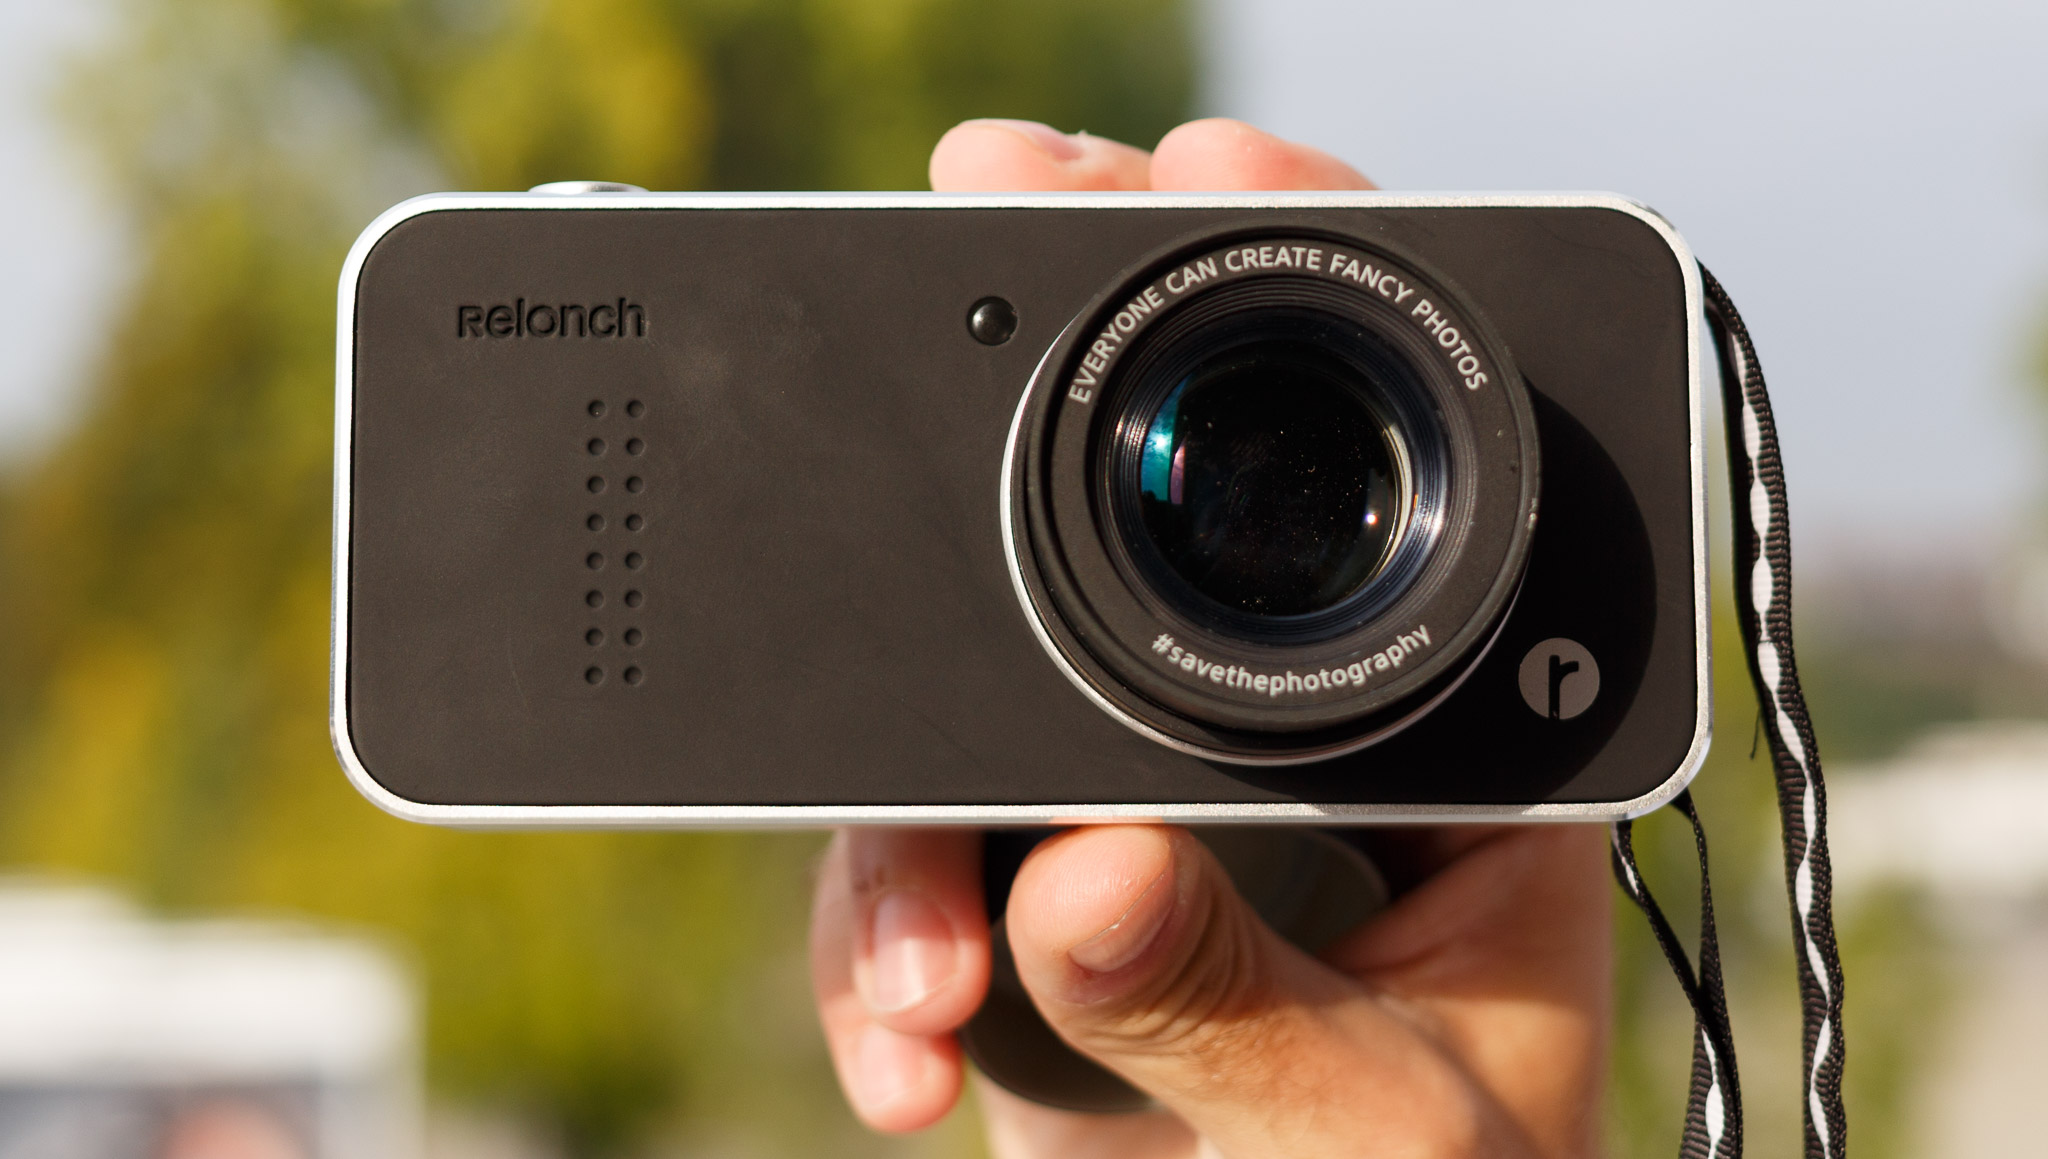 The Relonch Camera snaps onto an iPhone to let people take more dramatic photos than the phone can on its own, the startup says.